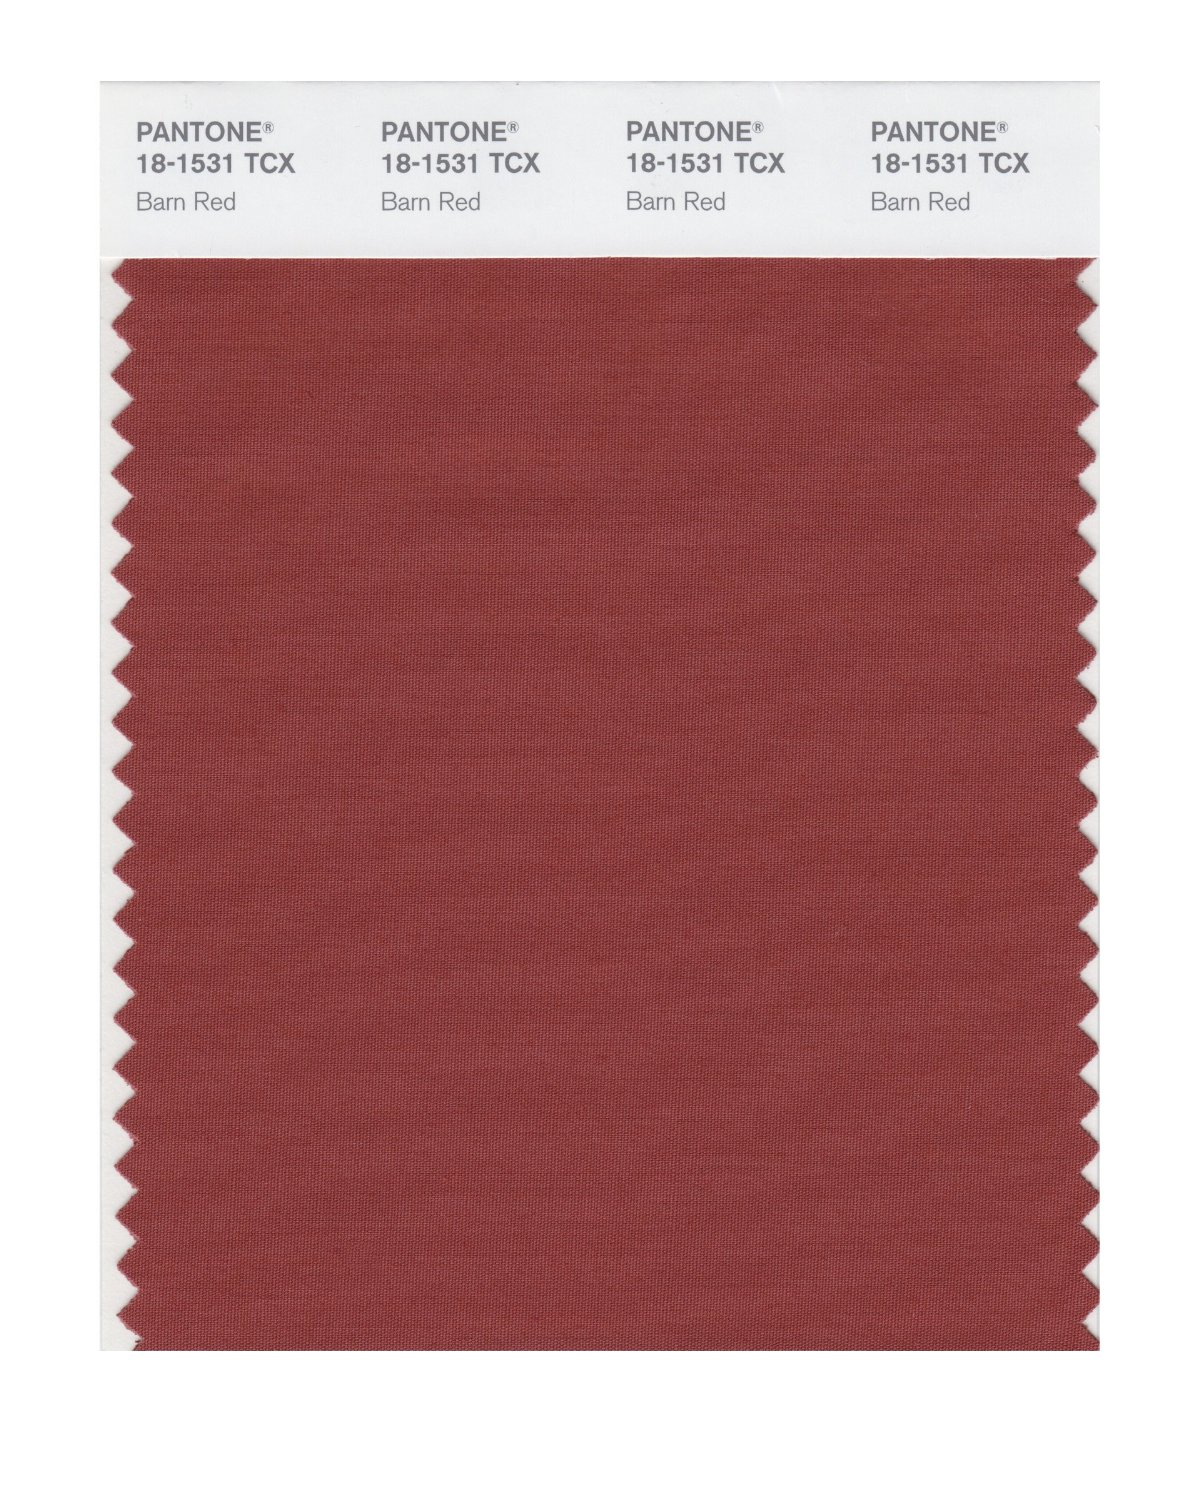 Pantone Smart Swatch 18-1531 Barn Red